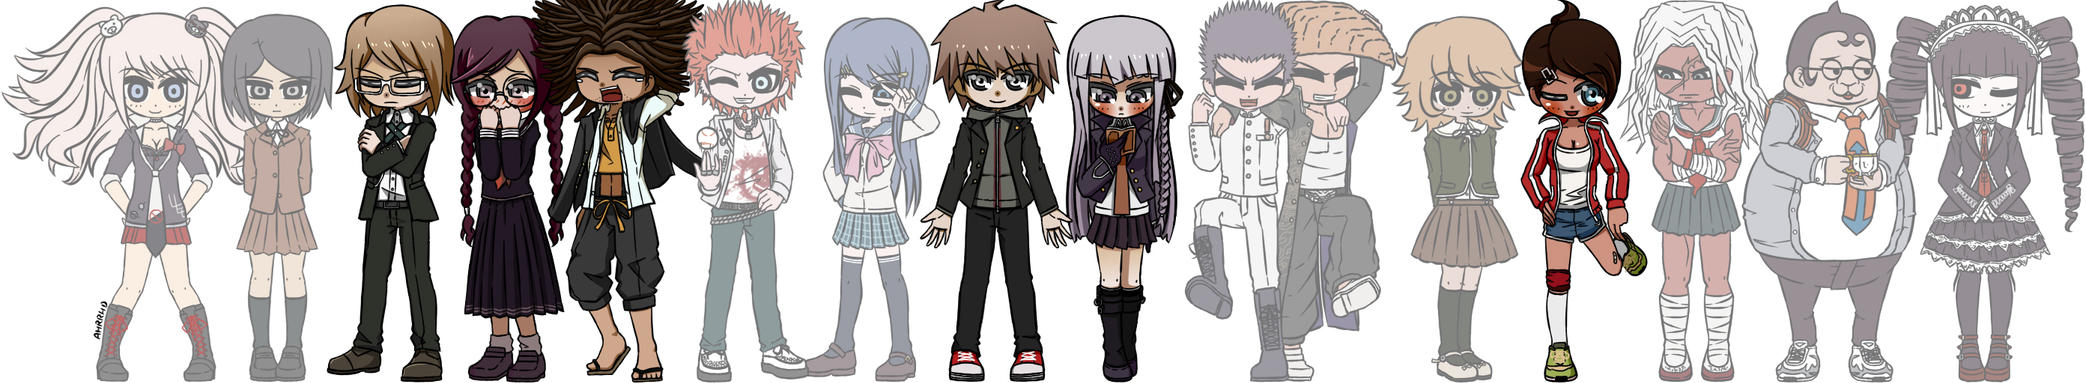 Danganronpa by Ahrrhd